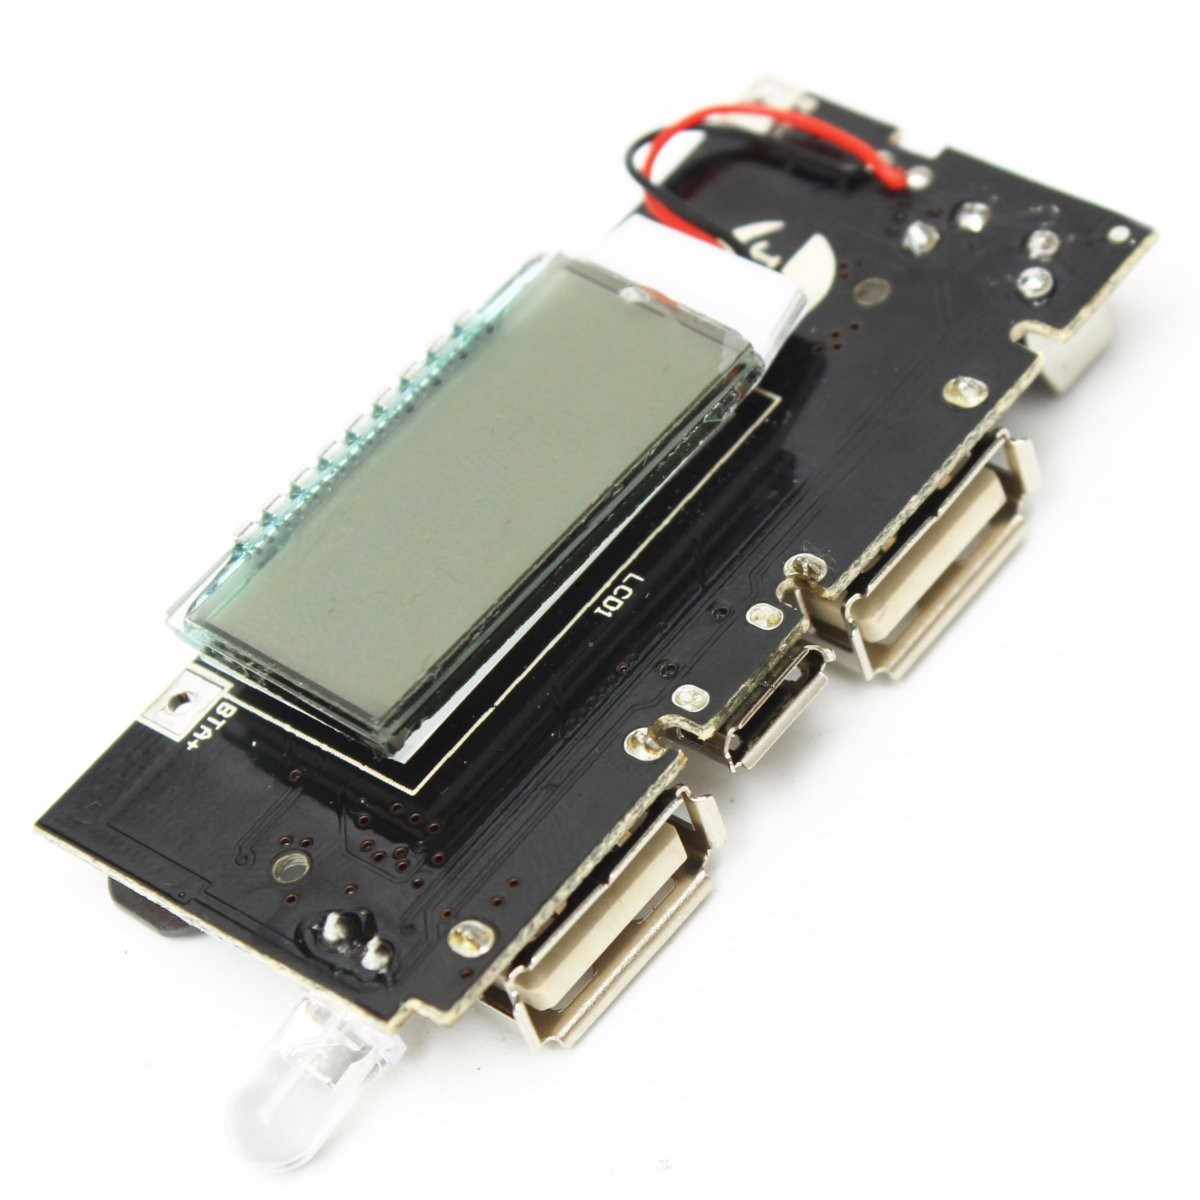 Dual USB 5V 1A 2.1A Mobile Power Bank 18650 Battery Charger PCB Power Module Accessories For Phone DIY New LED LCD Module Board(China (Mainland))